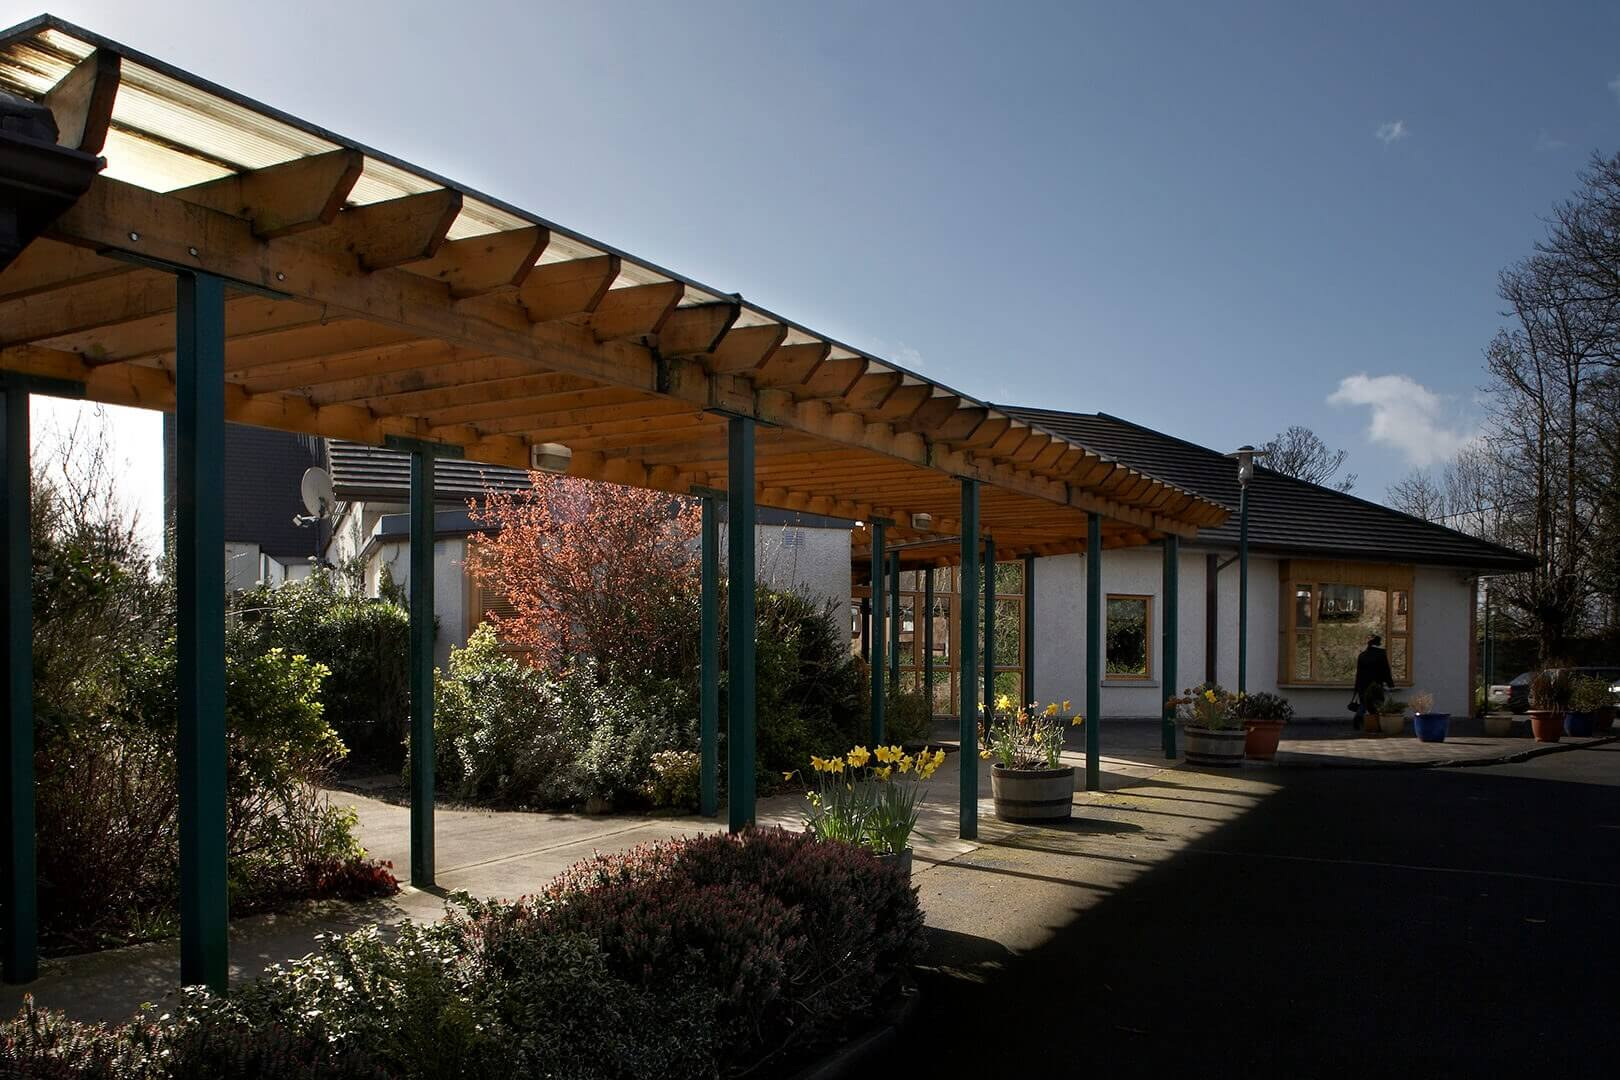 Cheshire Ireland Special Needs Residential Development & Resource Centre, John's Hill, Waterford, Ireland